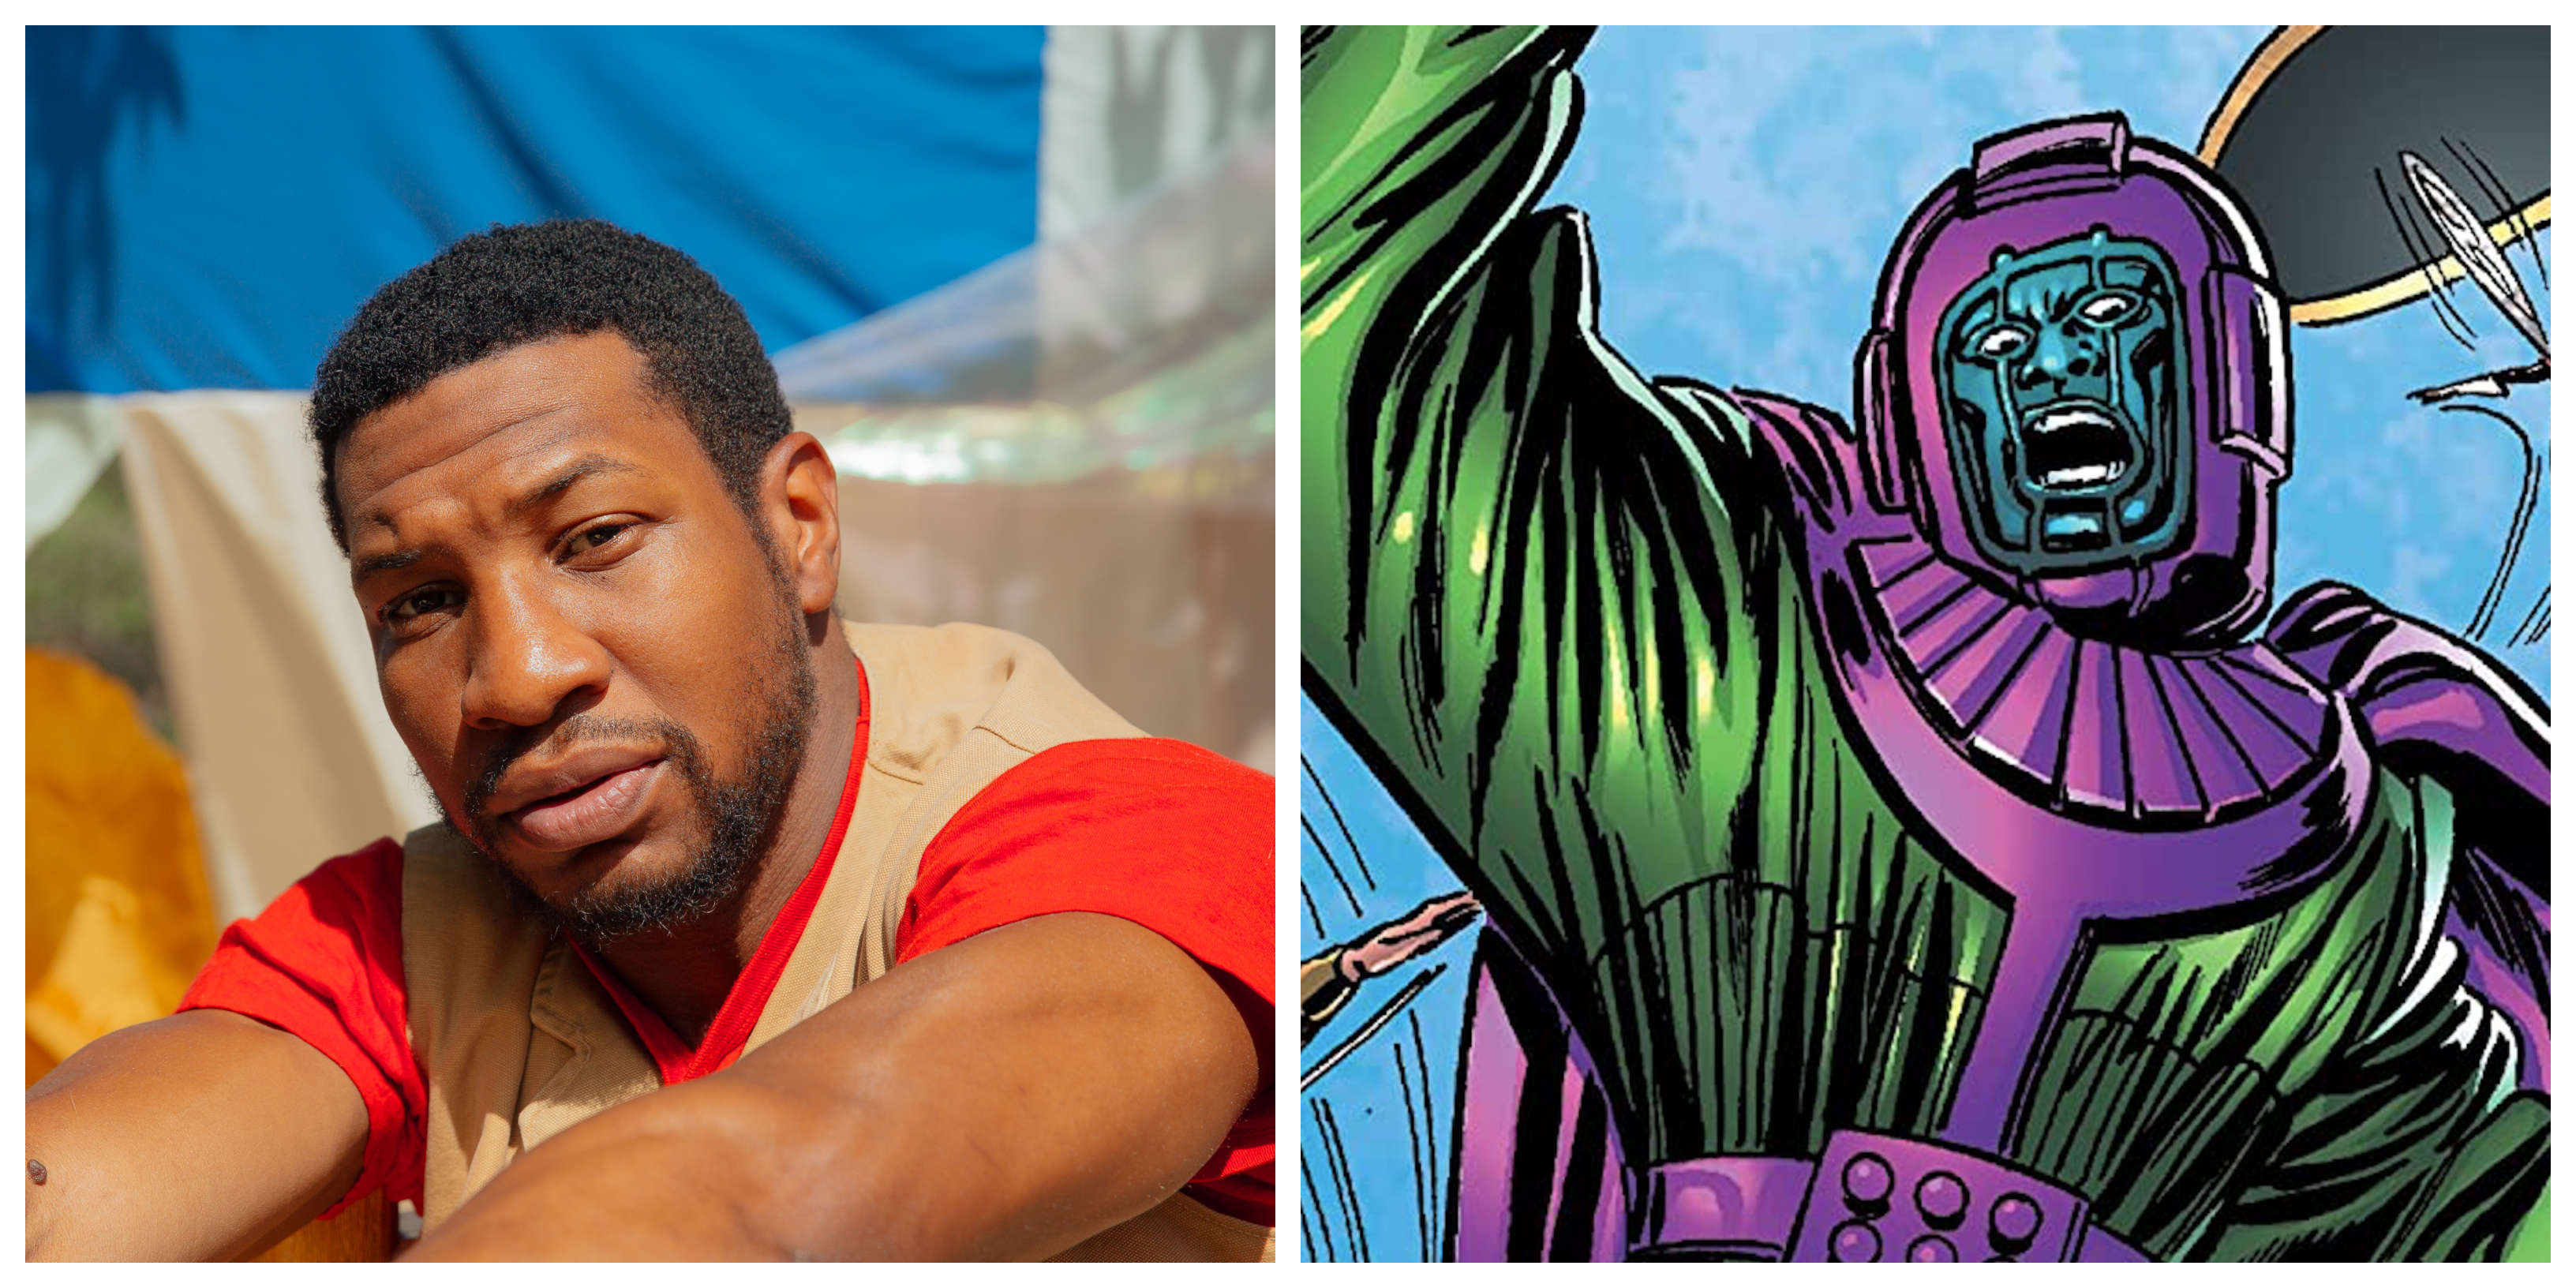 Lovecraft Country's Jonathan Majors reportedly lands role of Kang the Conquerer in Ant-Man 3